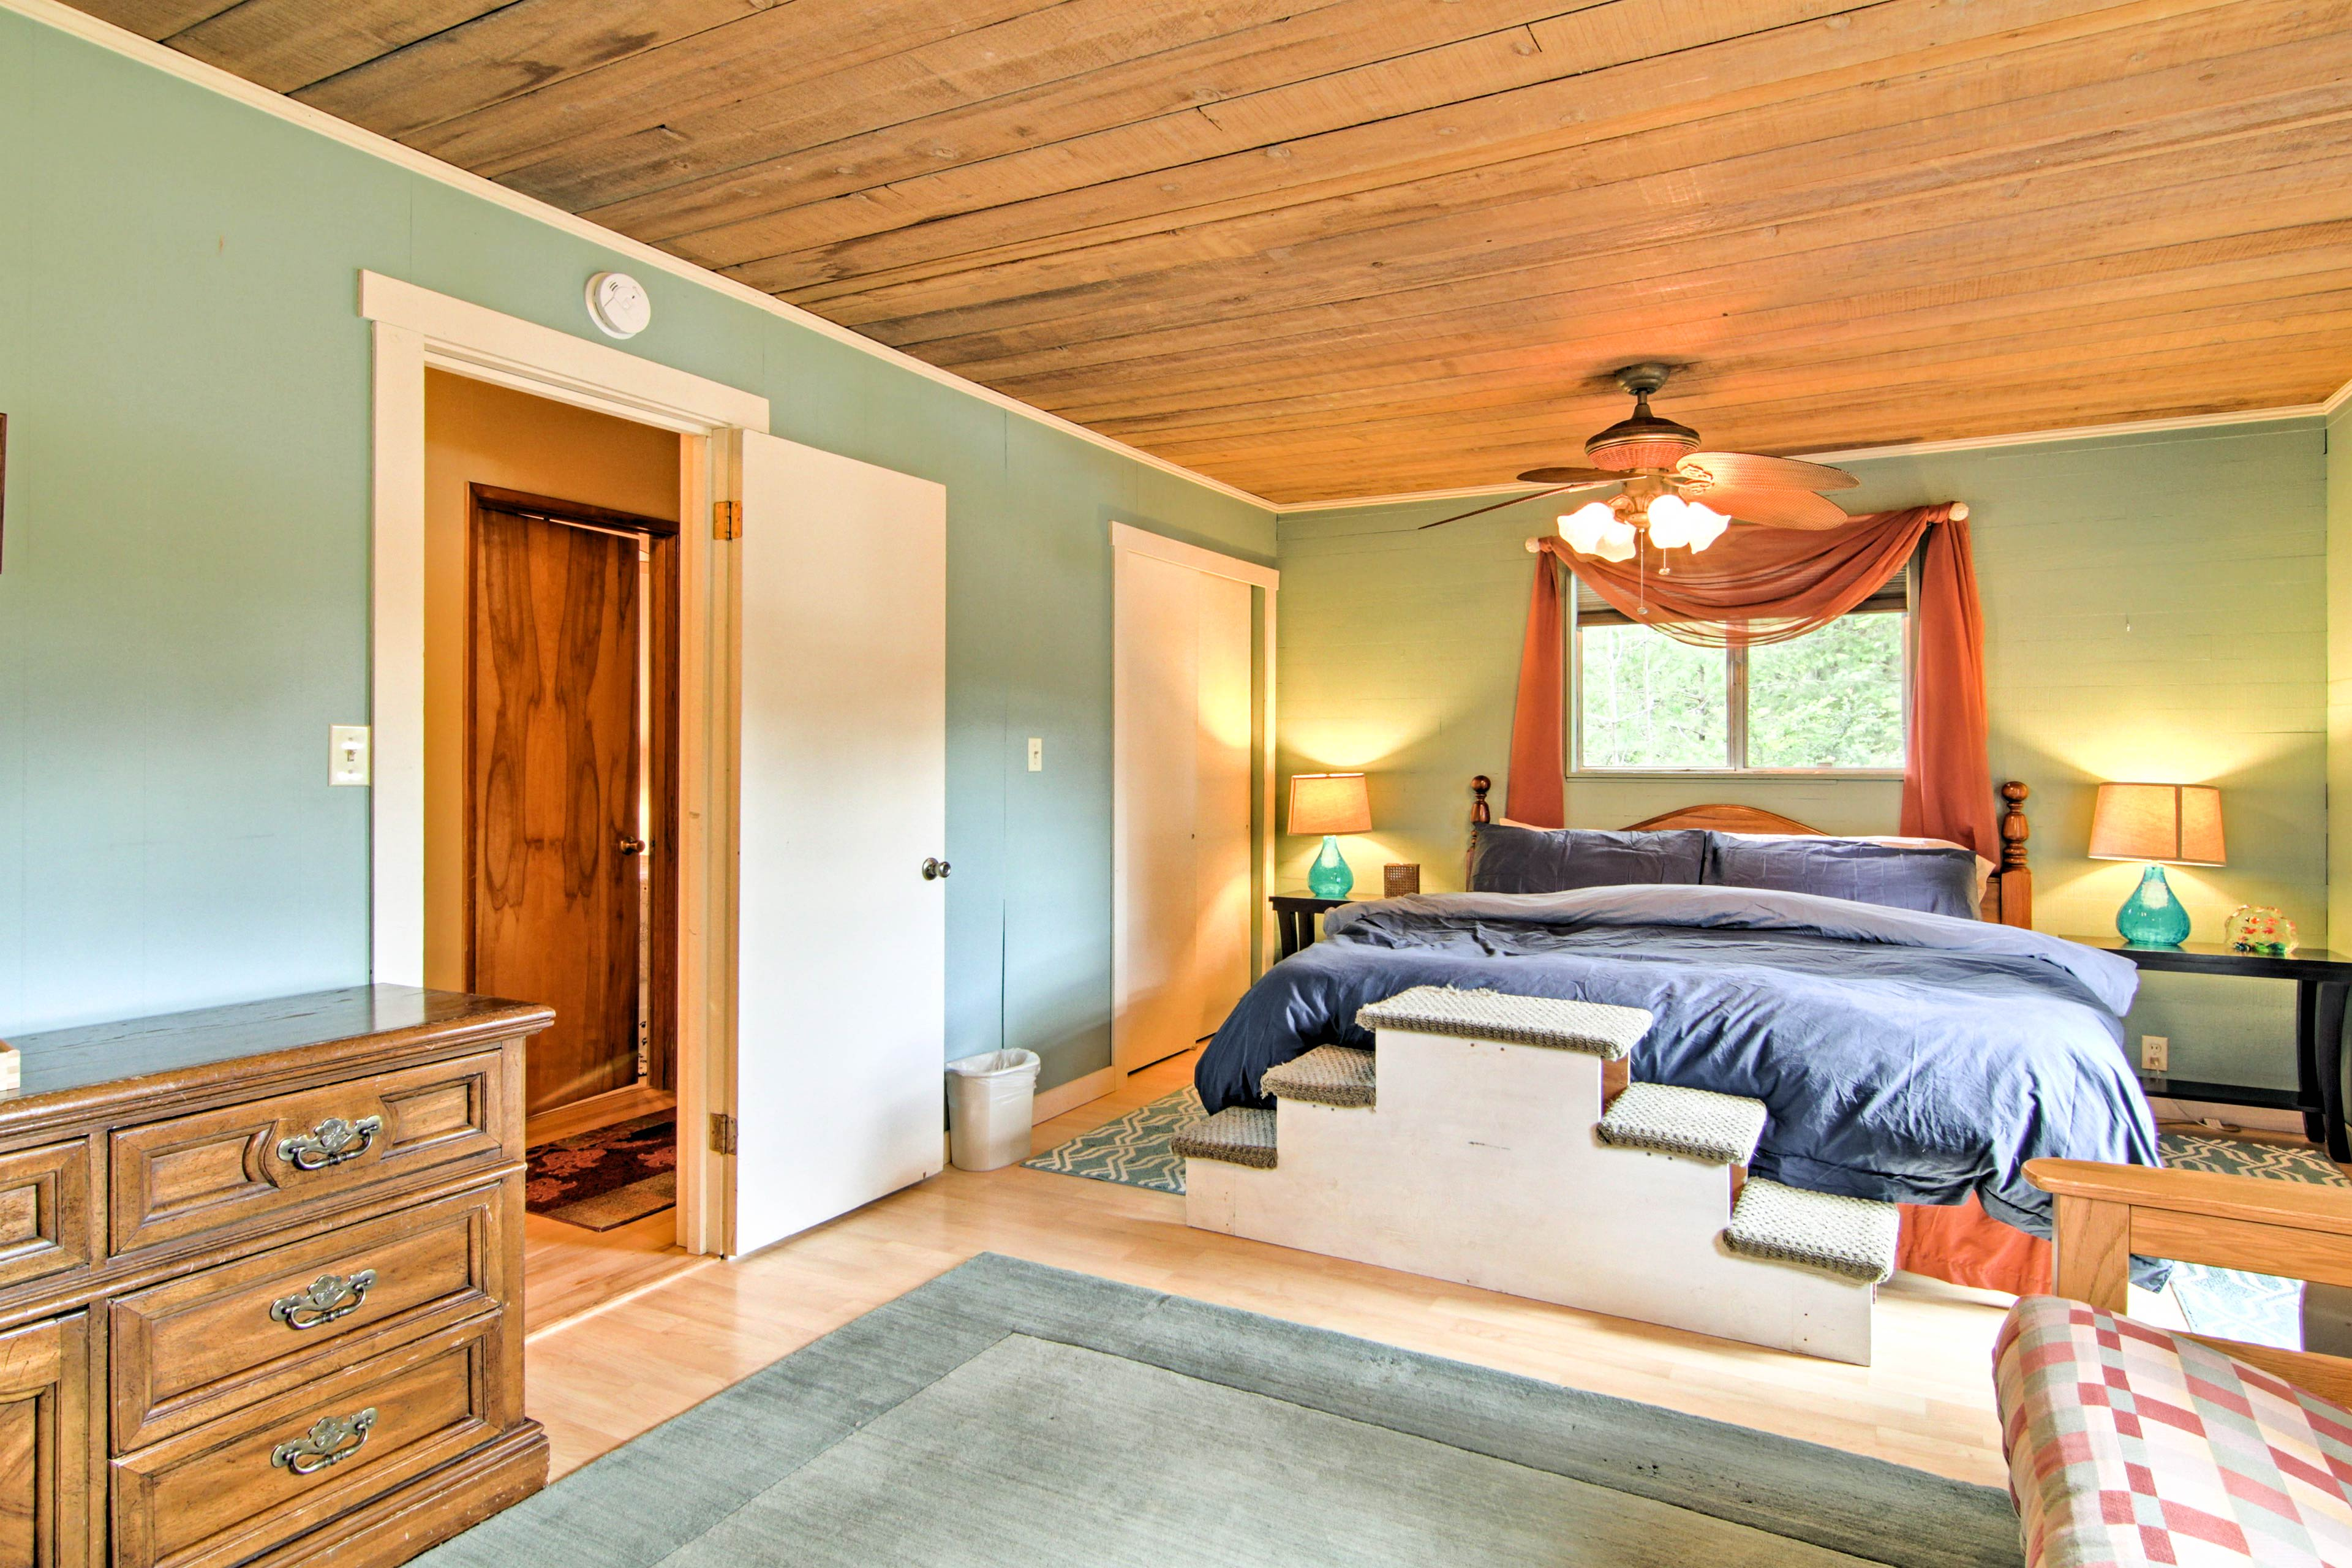 The bright master bedroom has rustic high wood-paneled ceilings.